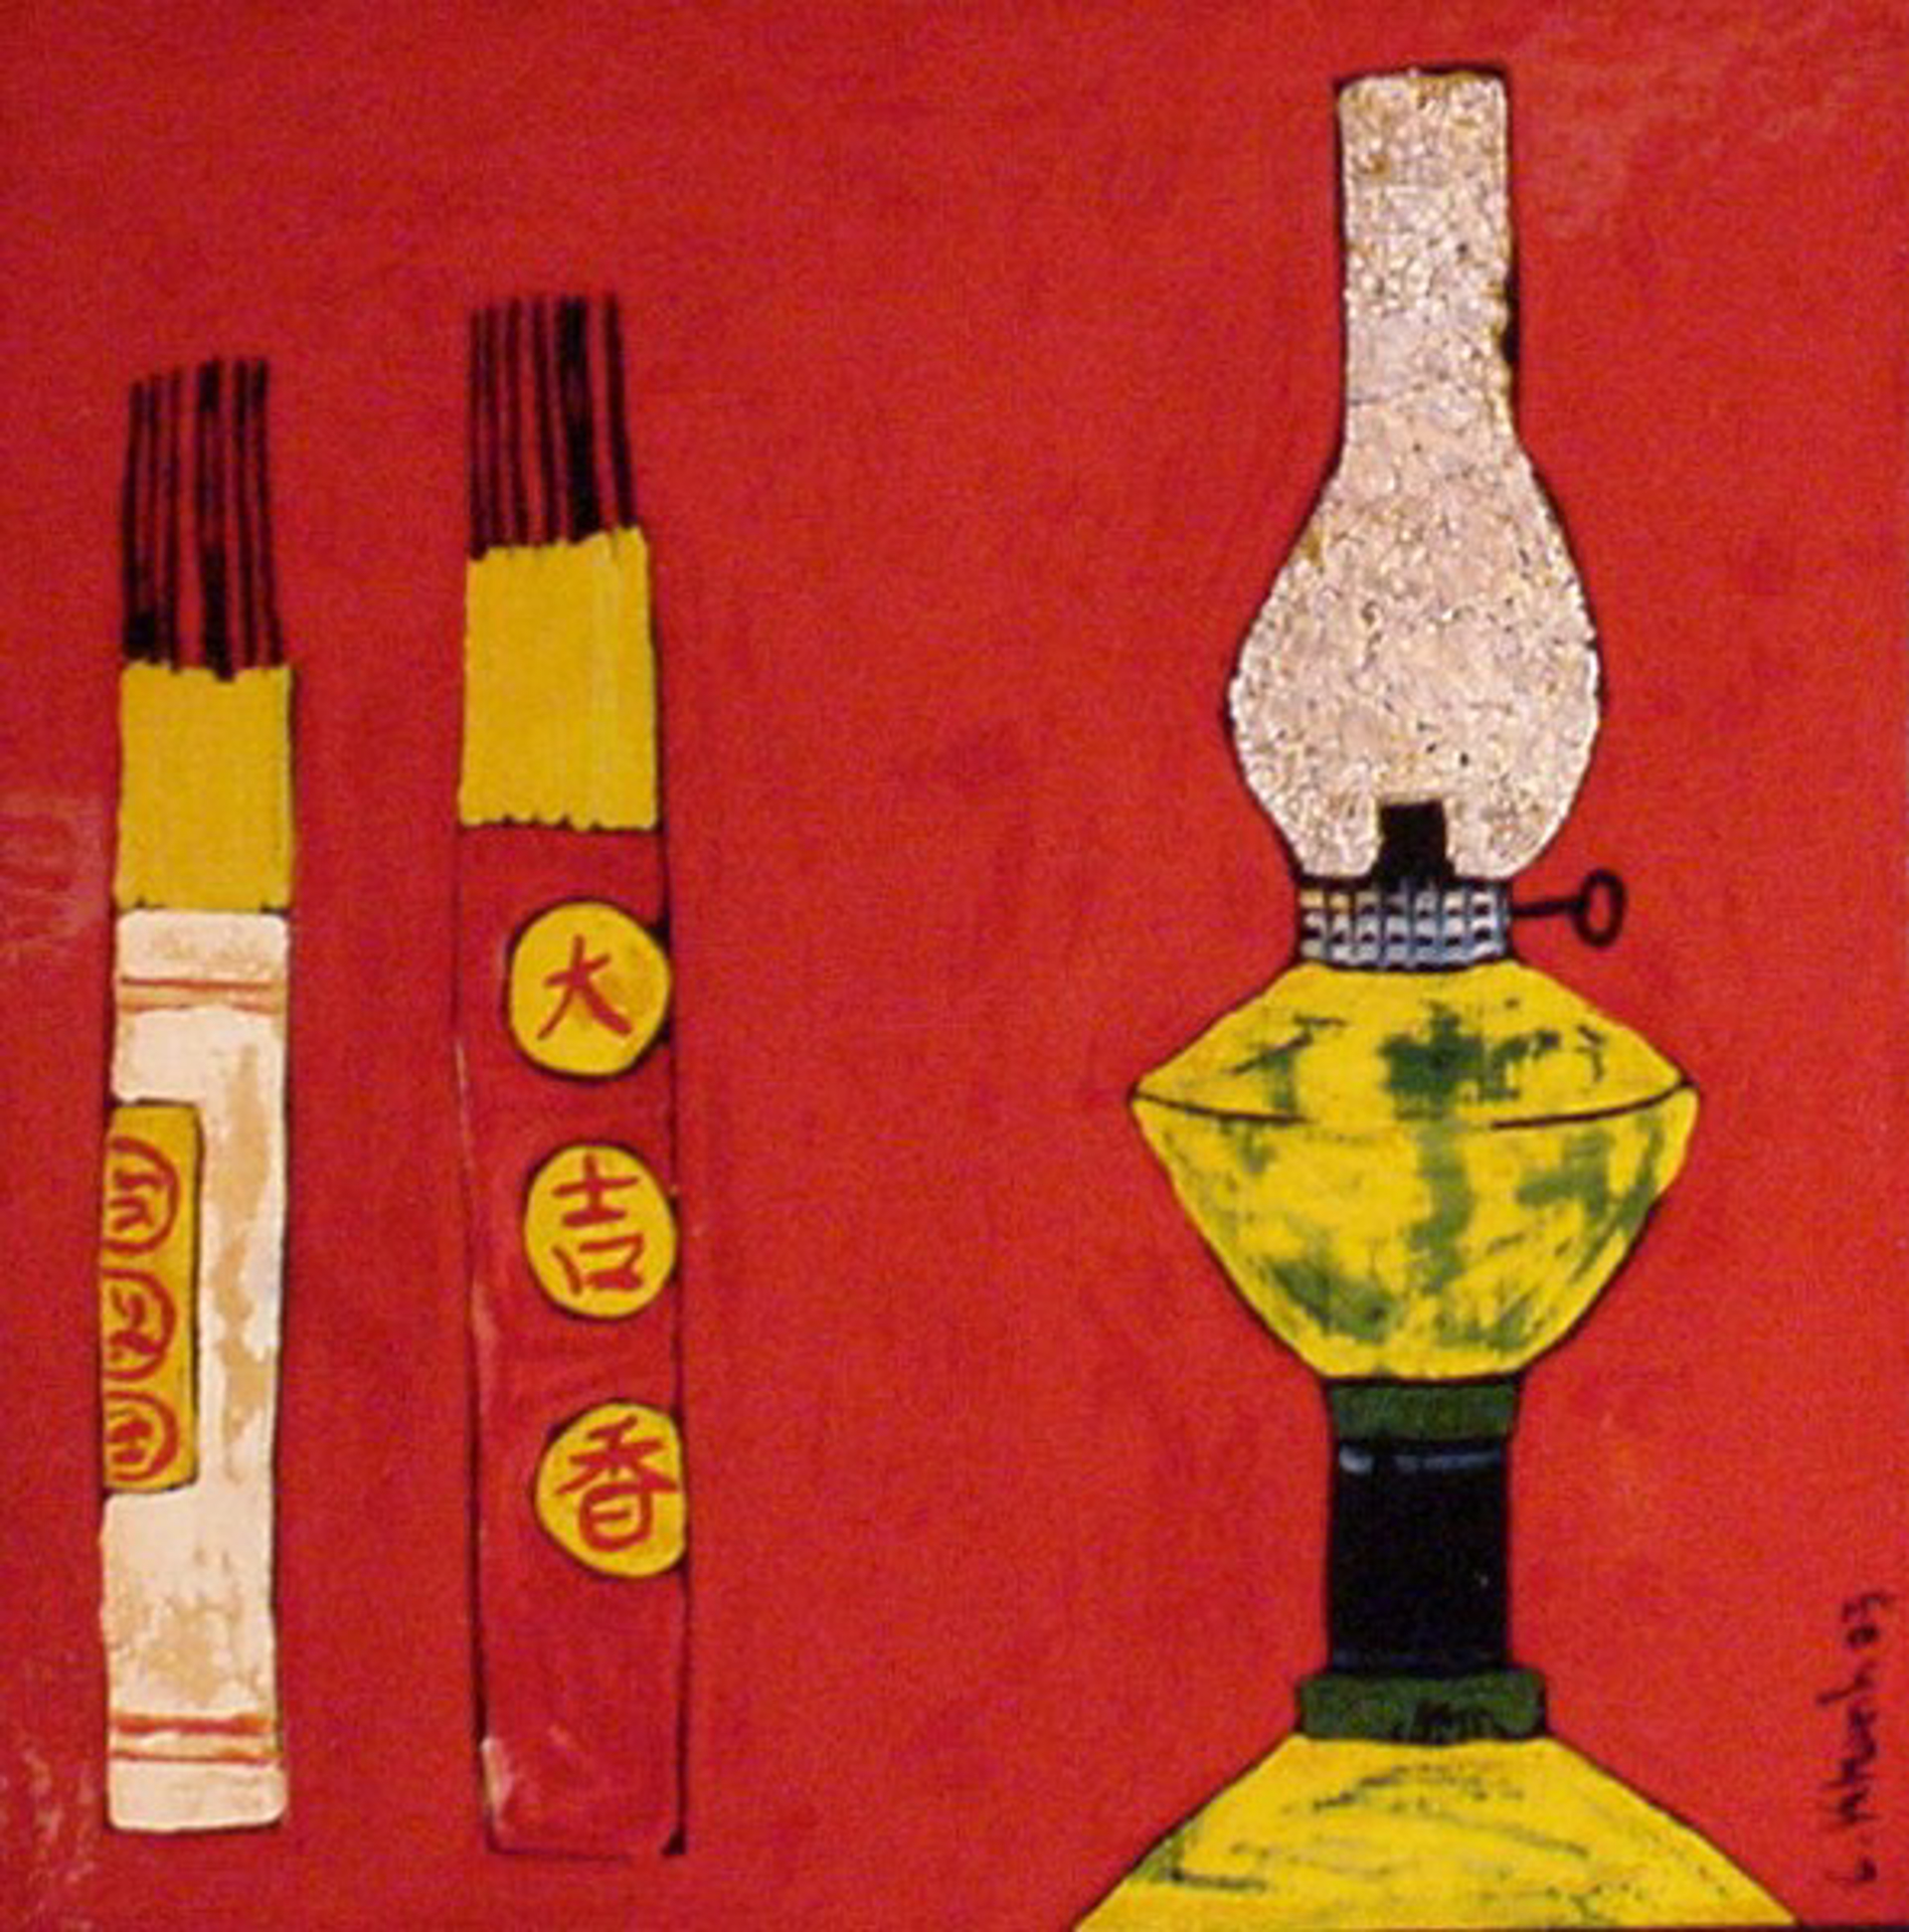 Still Life with Lantern and Incense by Bui Cong Khanh